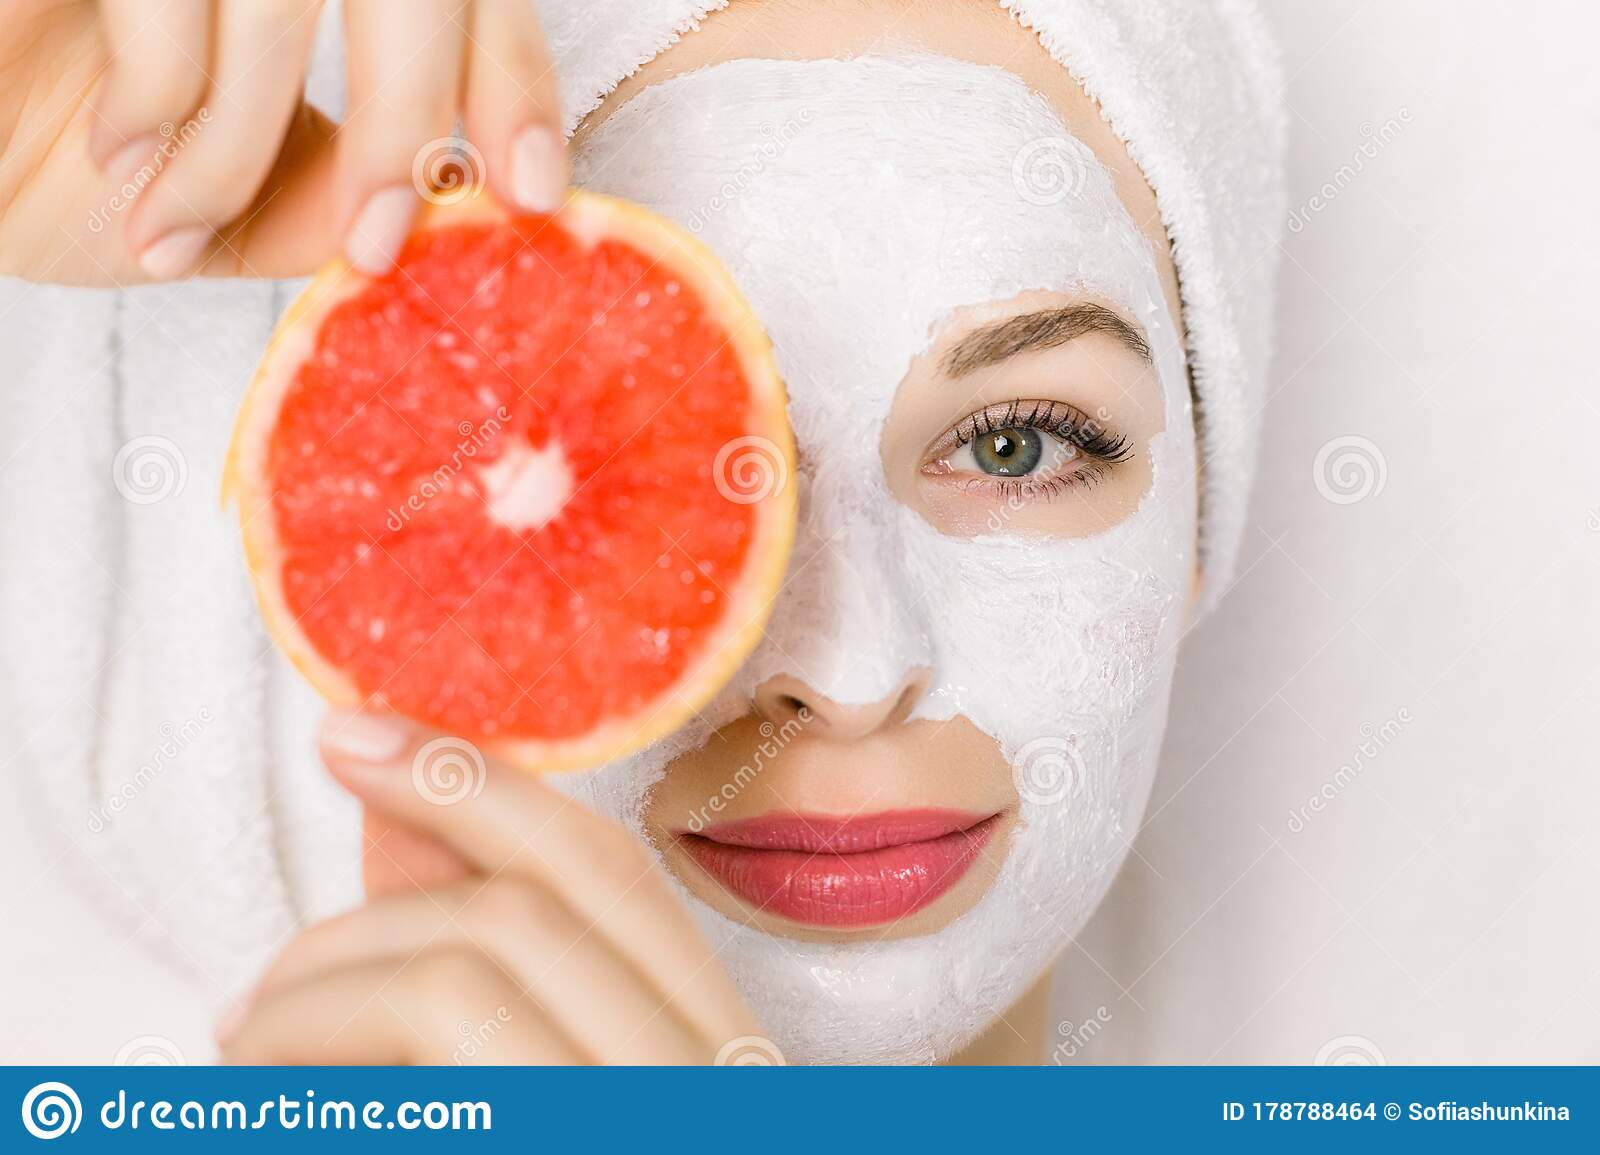 Close Up Of Beautiful Young Smiling Woman With Towel On Head Facial Skin Mask Holding Grapefruit Slice In Front Of Her Stock Photo Image Of Female Apply 178788464